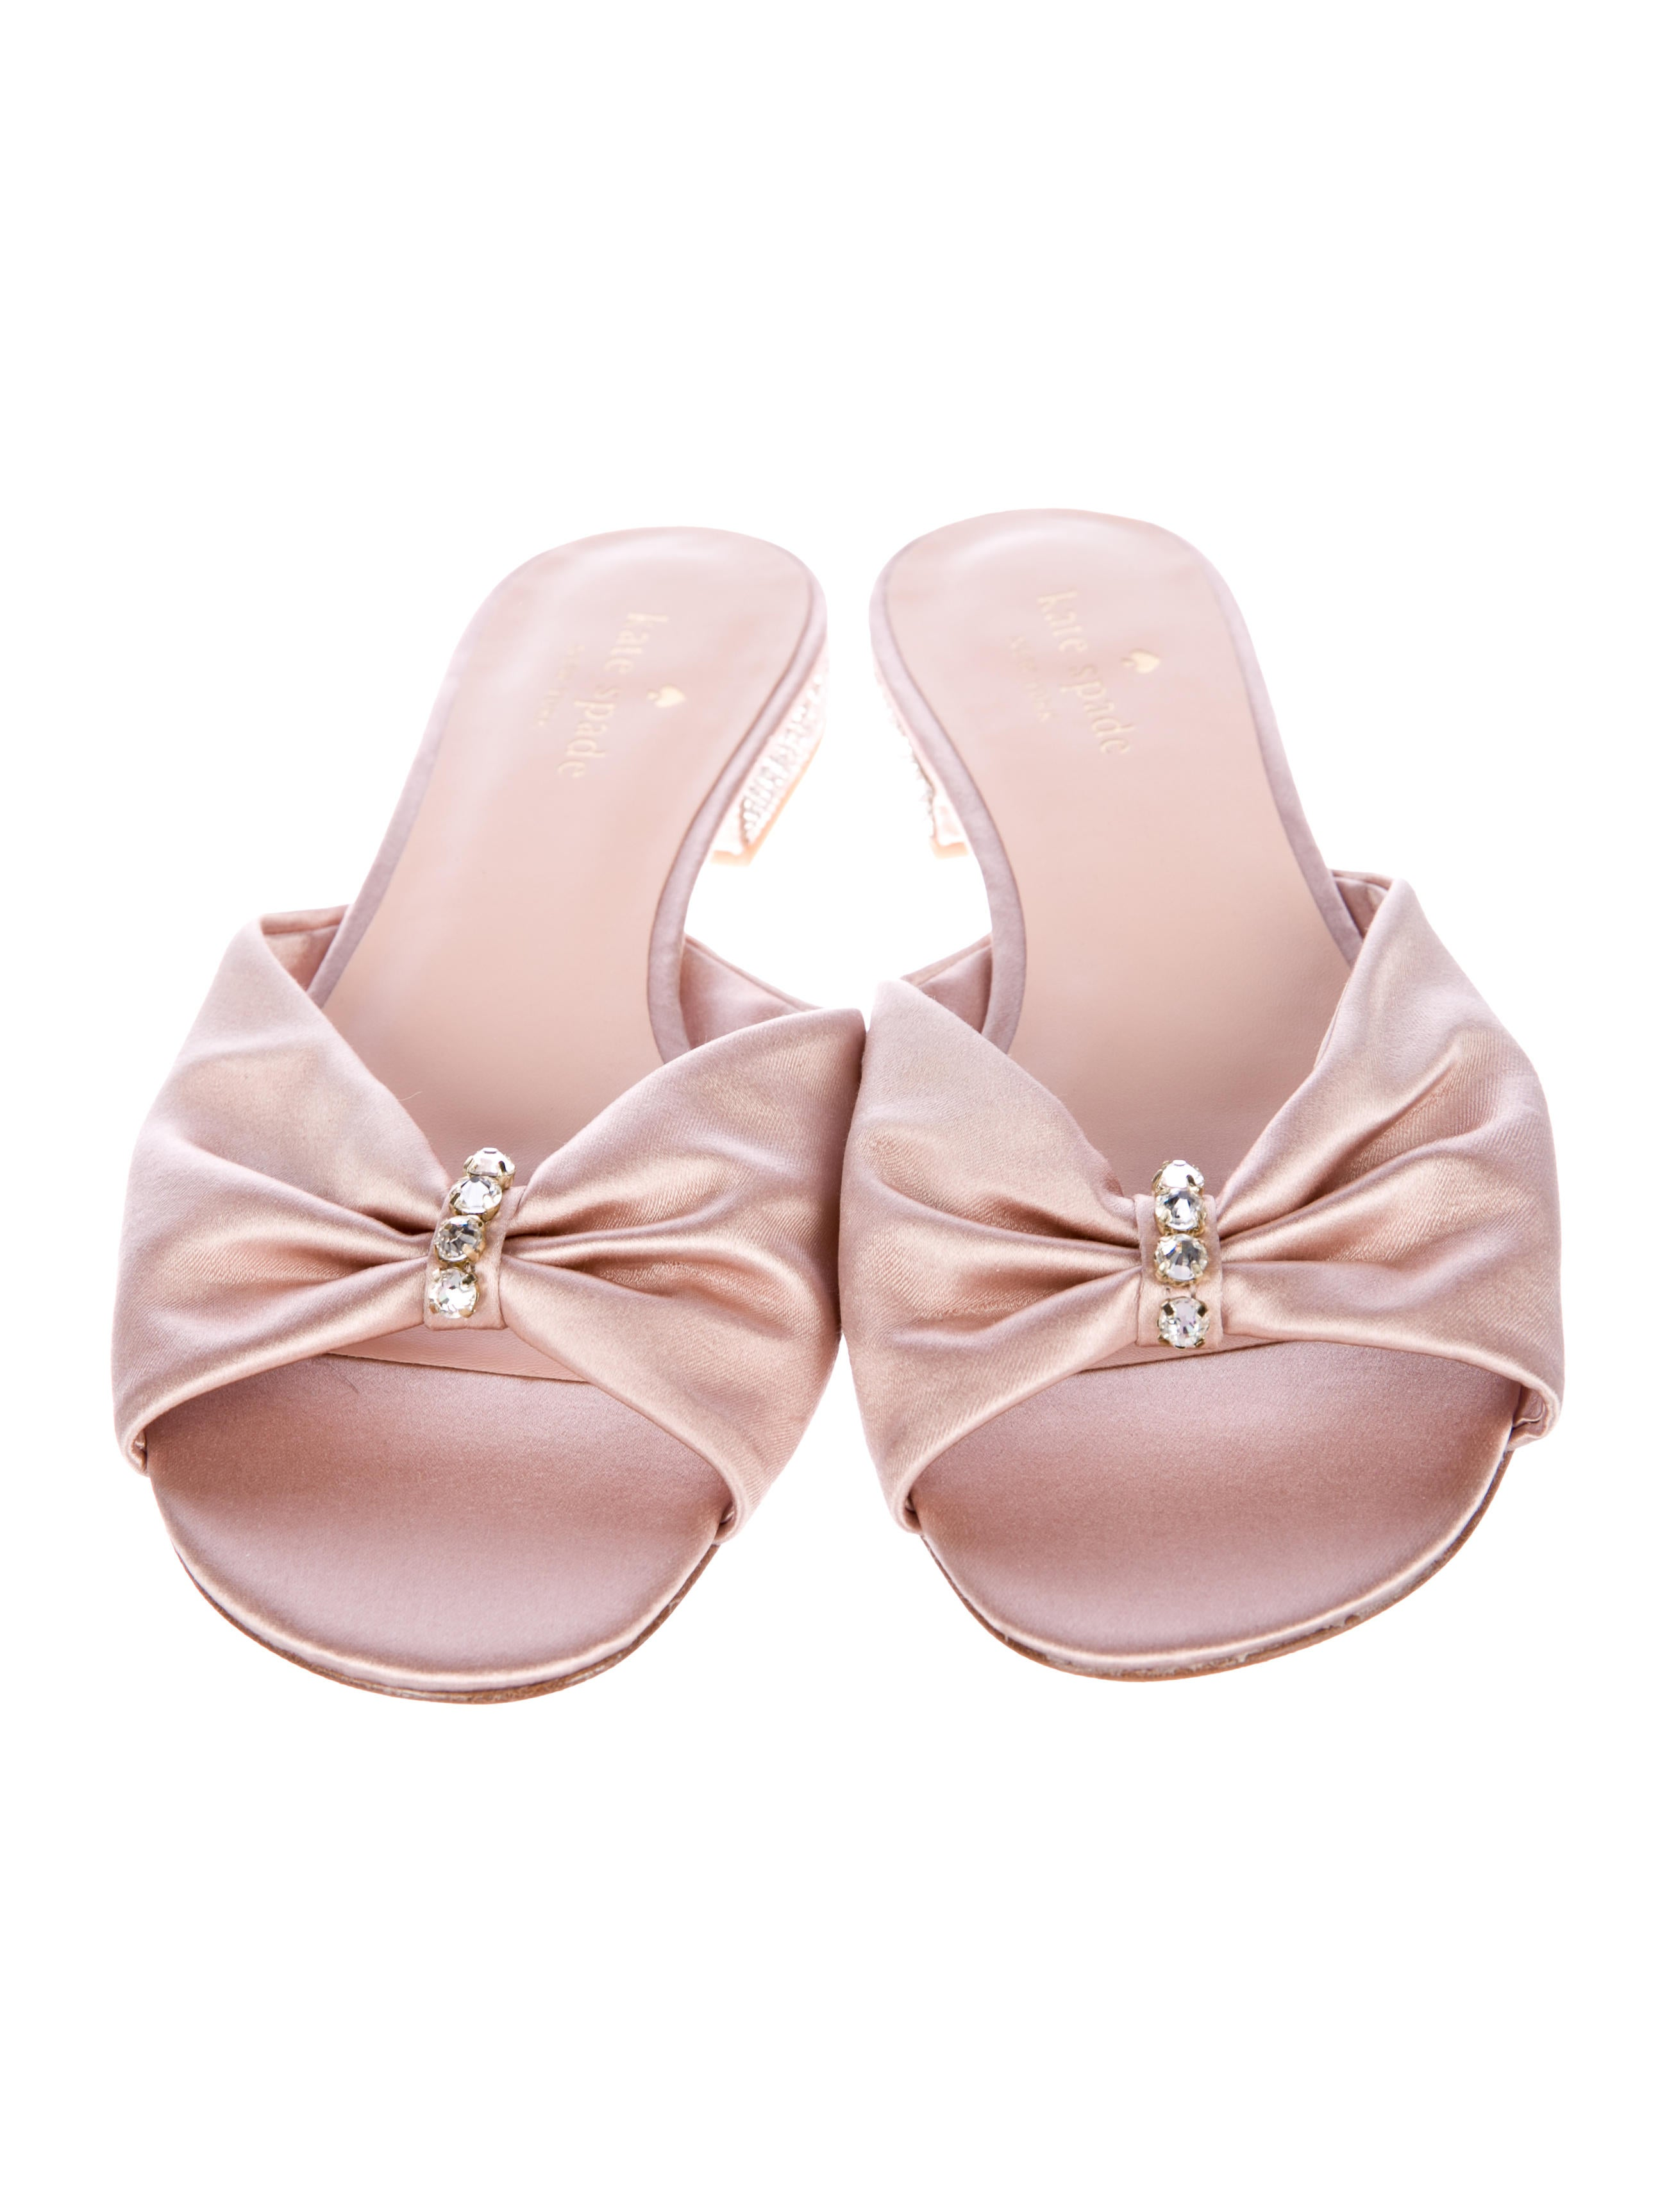 Kate Spade New York Fenton Satin Slide Sandals w/ Tags cheap price outlet sale aZssO